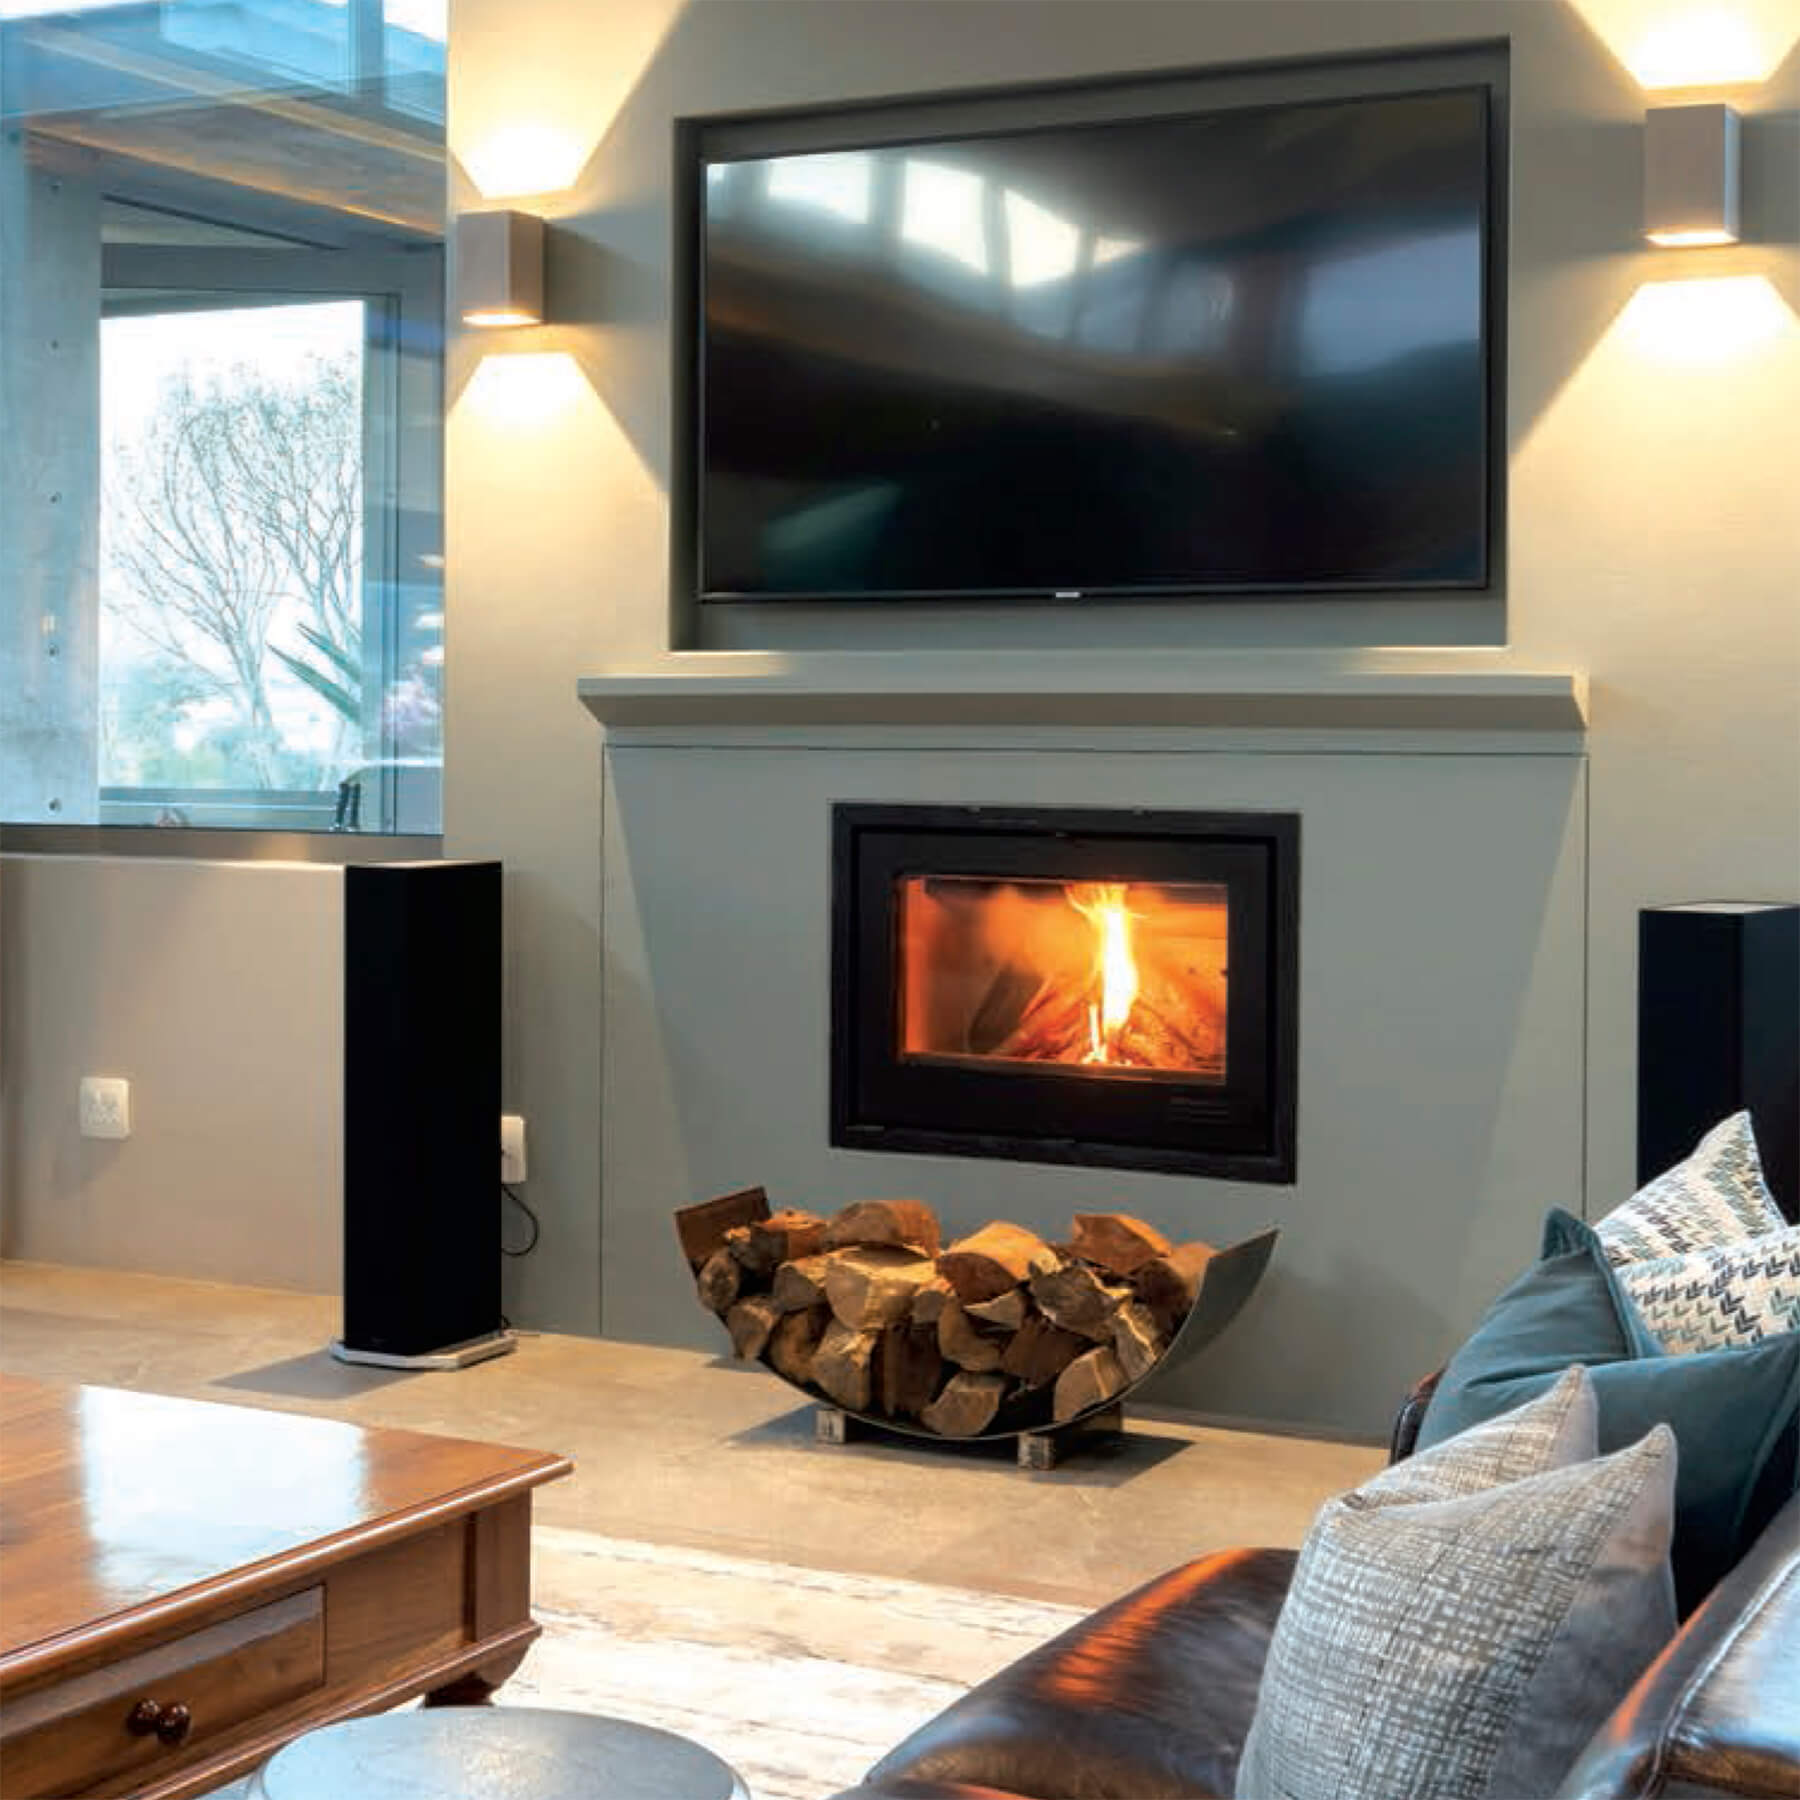 Combustion-Fireplaces-Built-In-14kw-Single-Sided-Insert-Convection-Unit-Environment